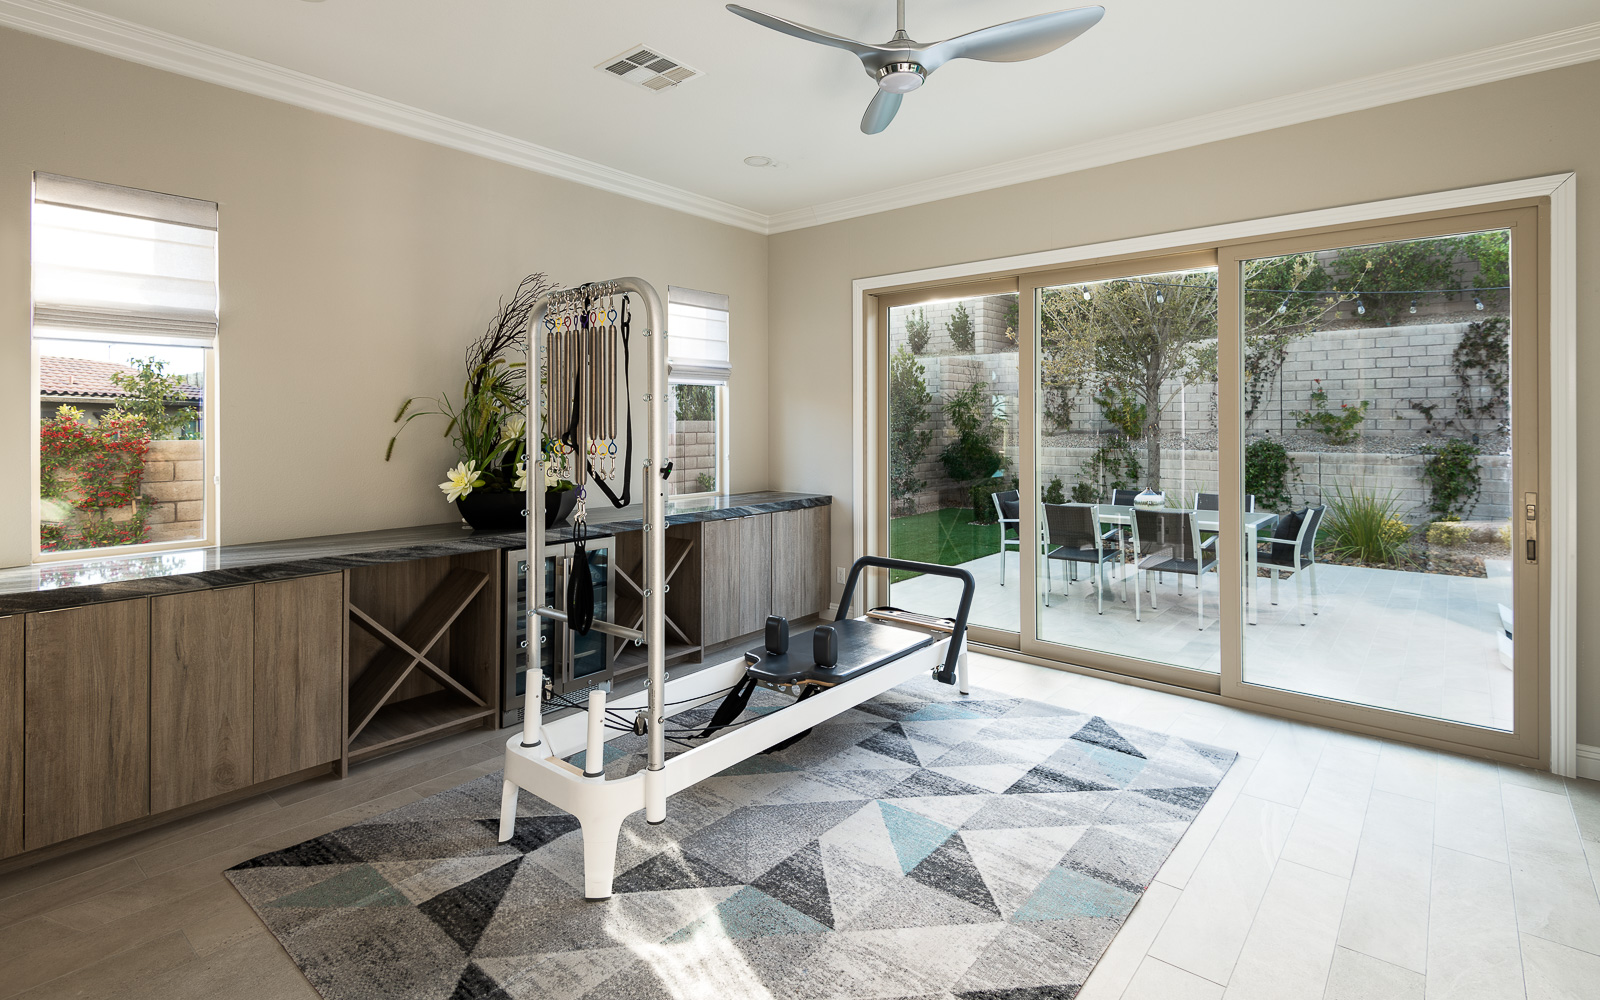 New Home Transformation Photo Gallery - Southern Vegas Valley Contracting